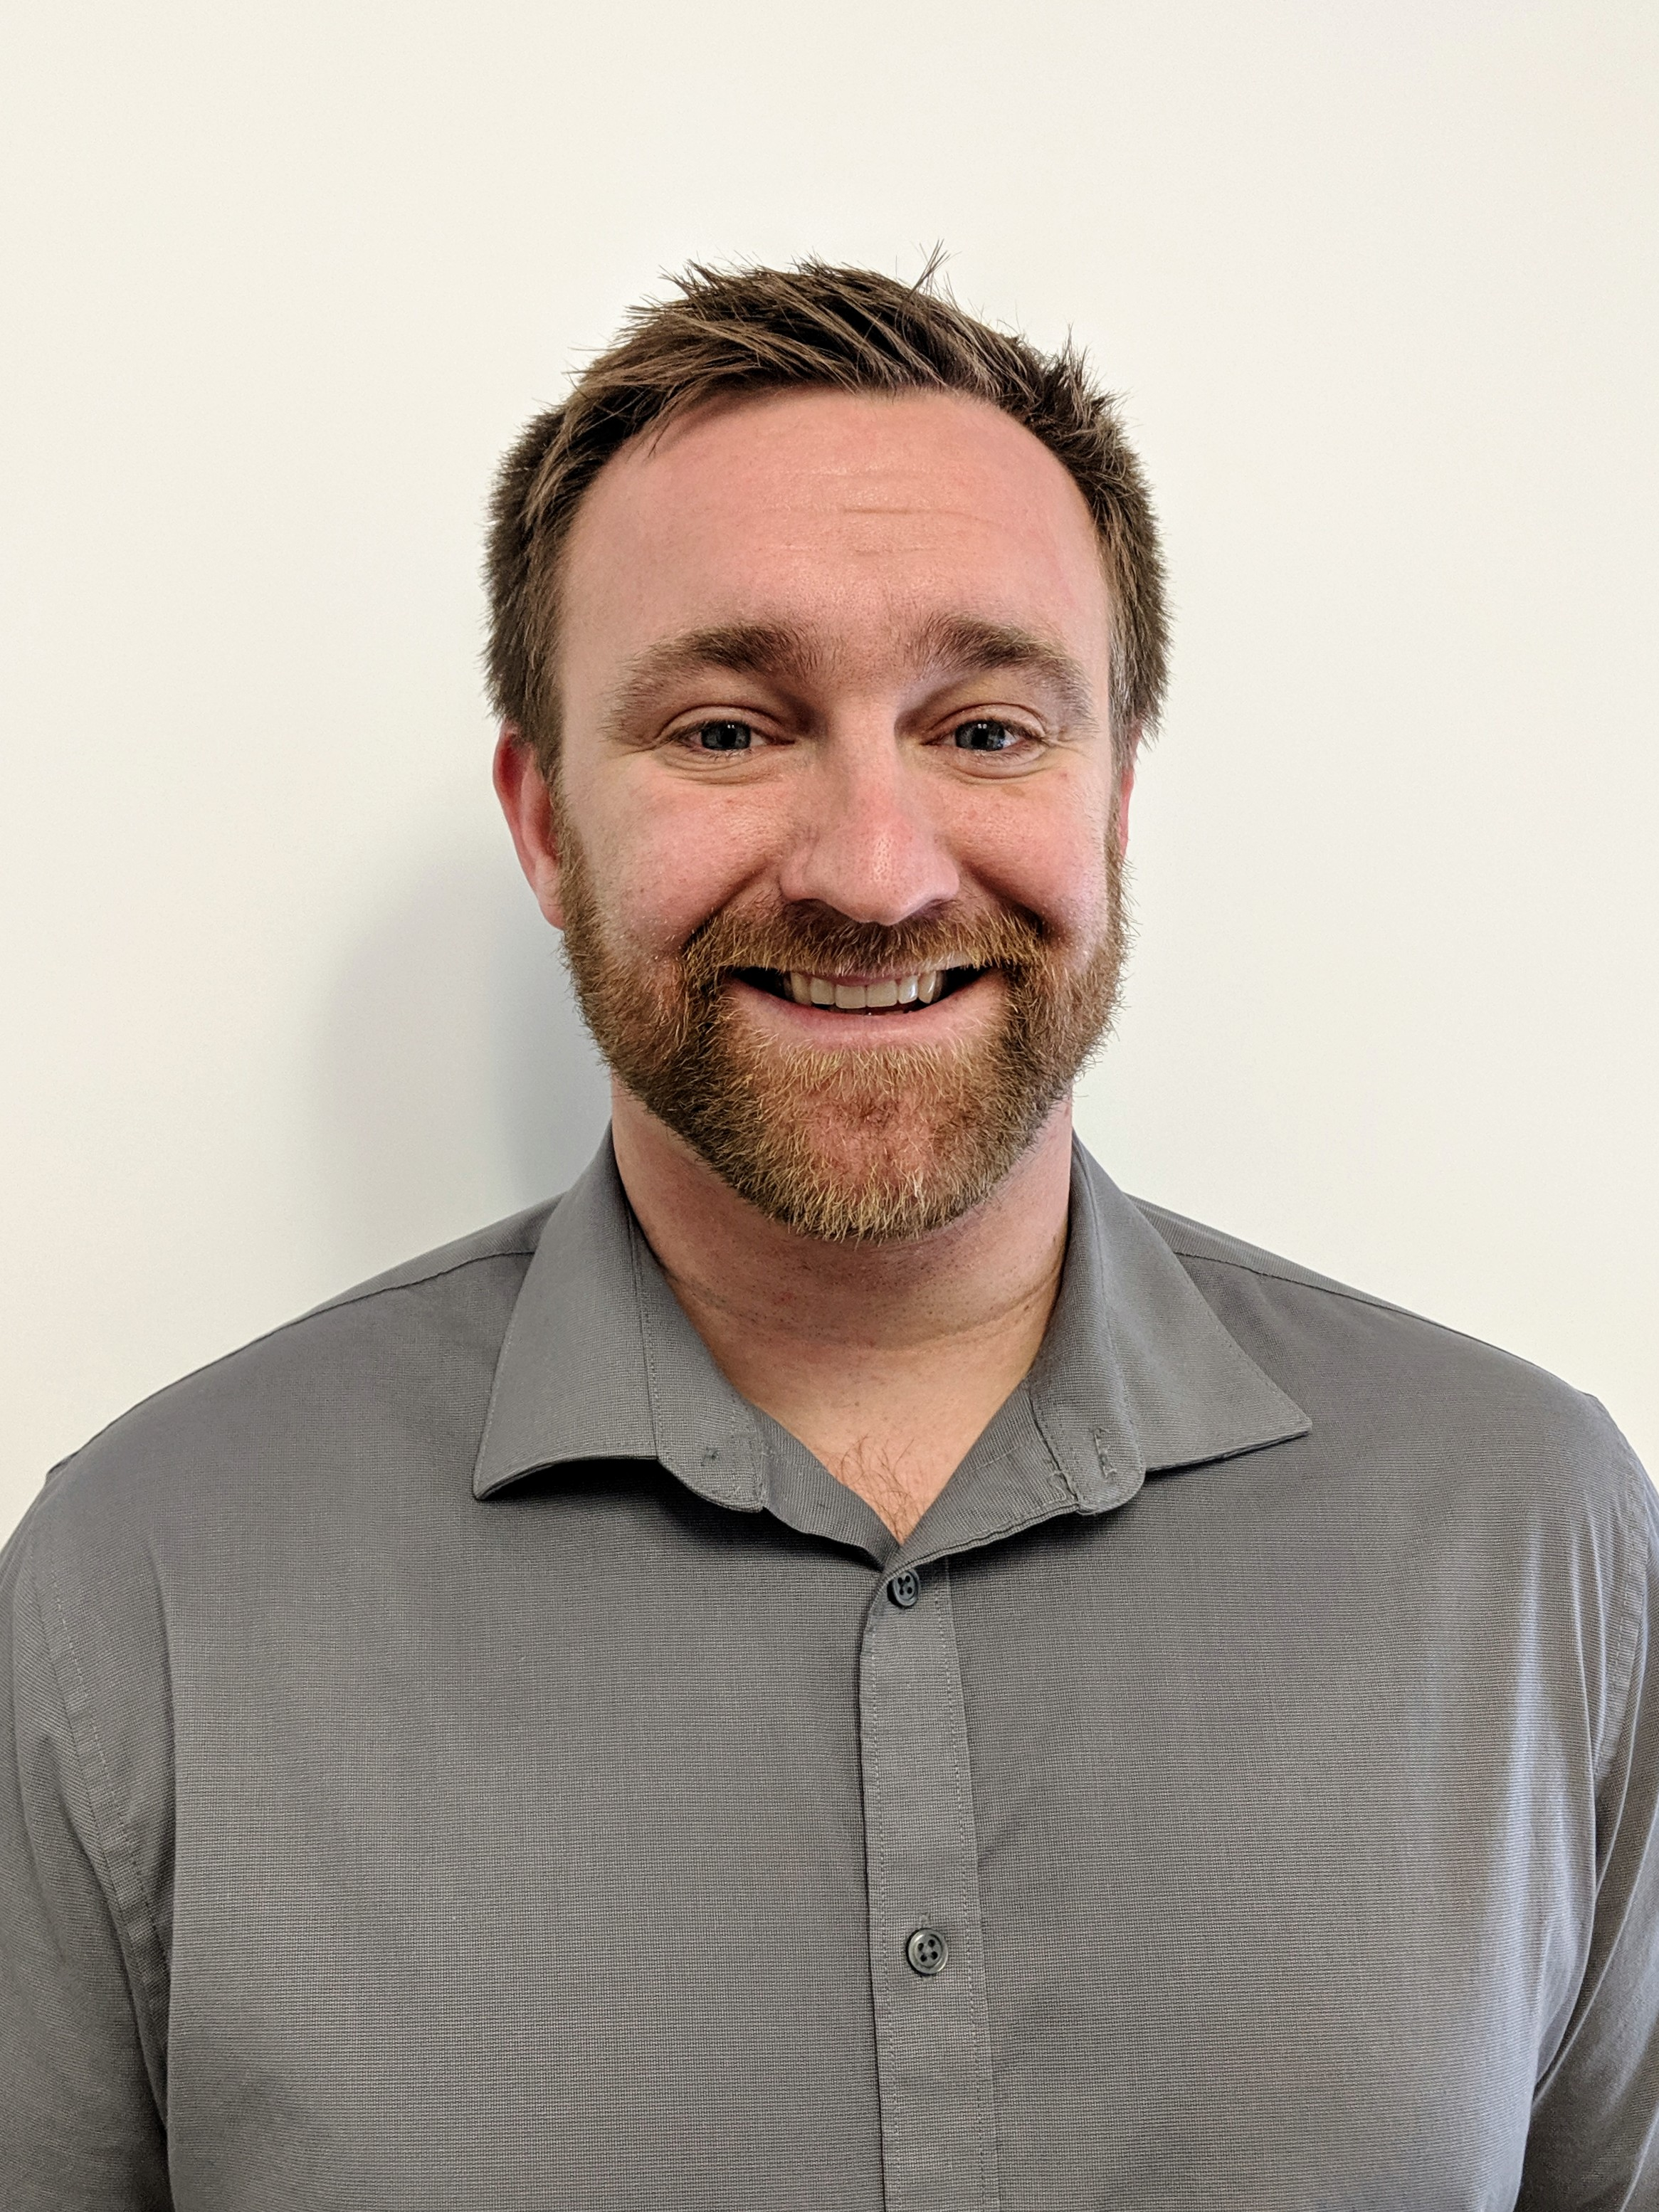 Matthew Seman - Assistant Service Manager